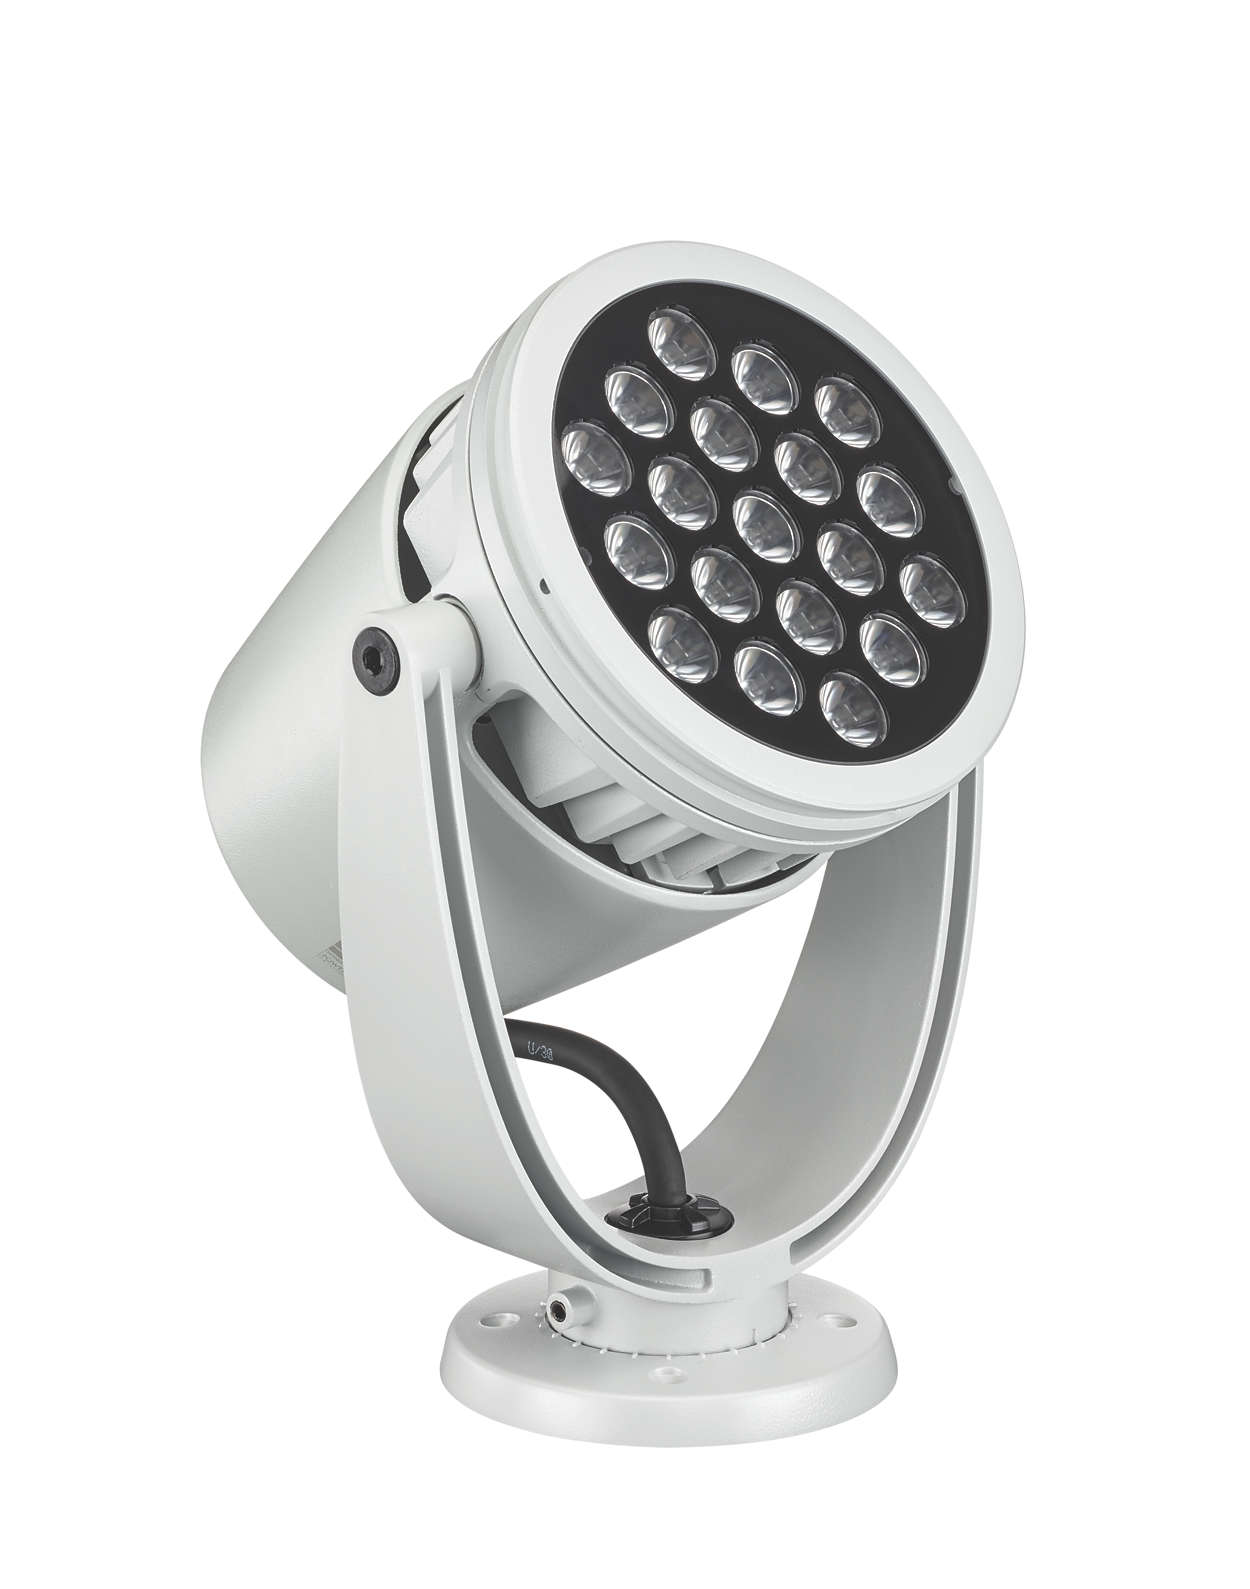 Architecturale LED-spotlight met intelligent wit en gekleurd licht